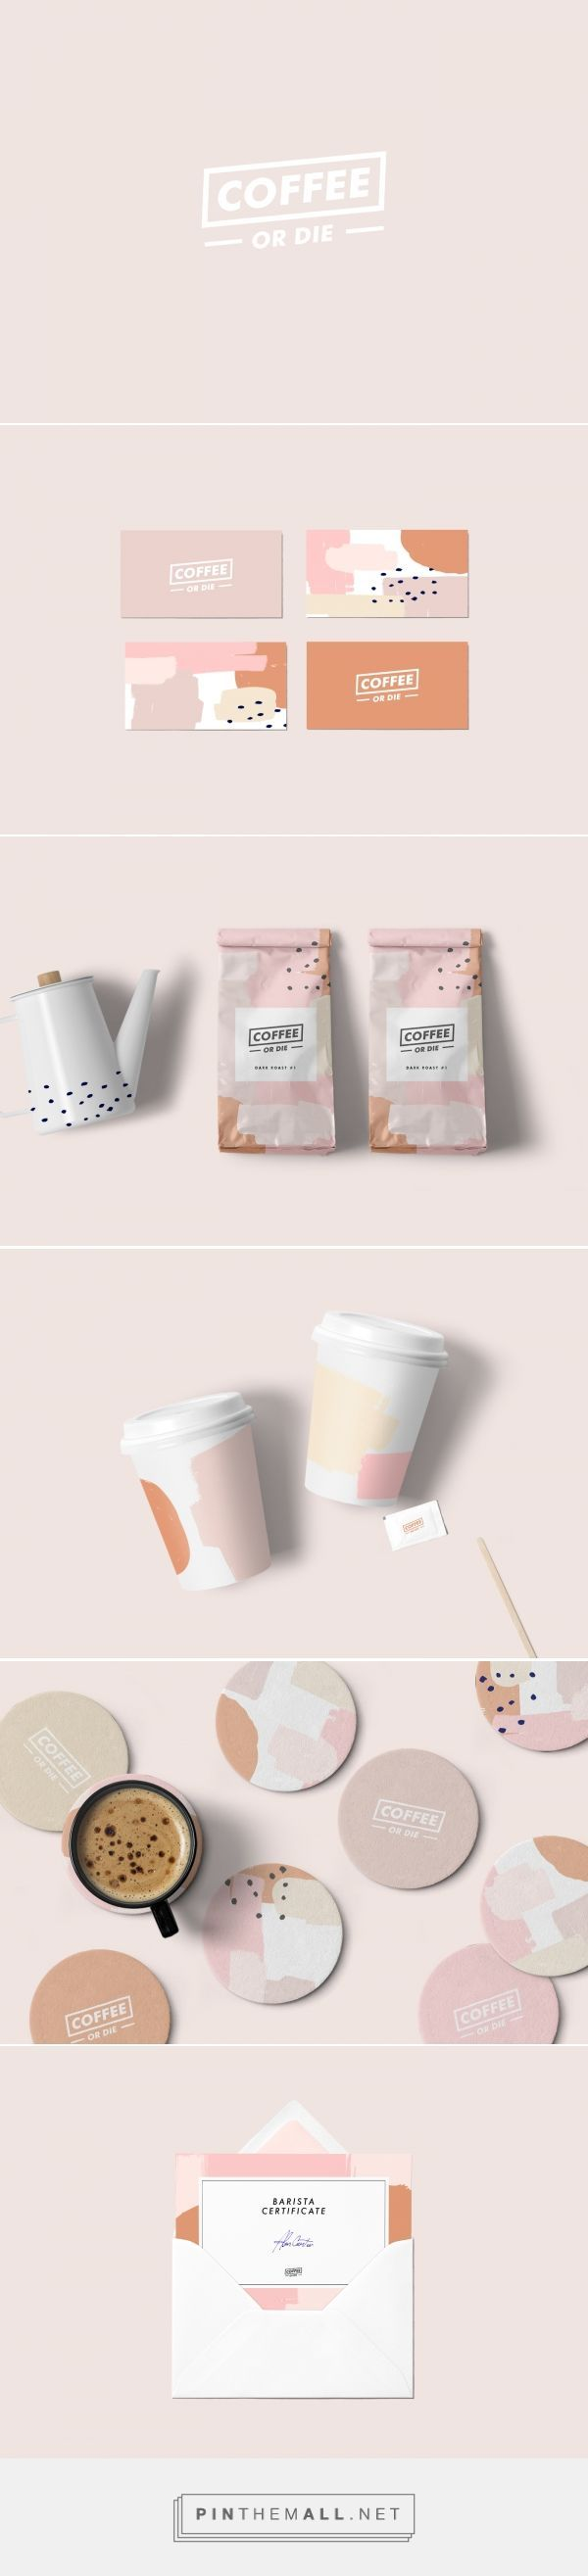 Coffee or Die Branding by Fernanda Meotti